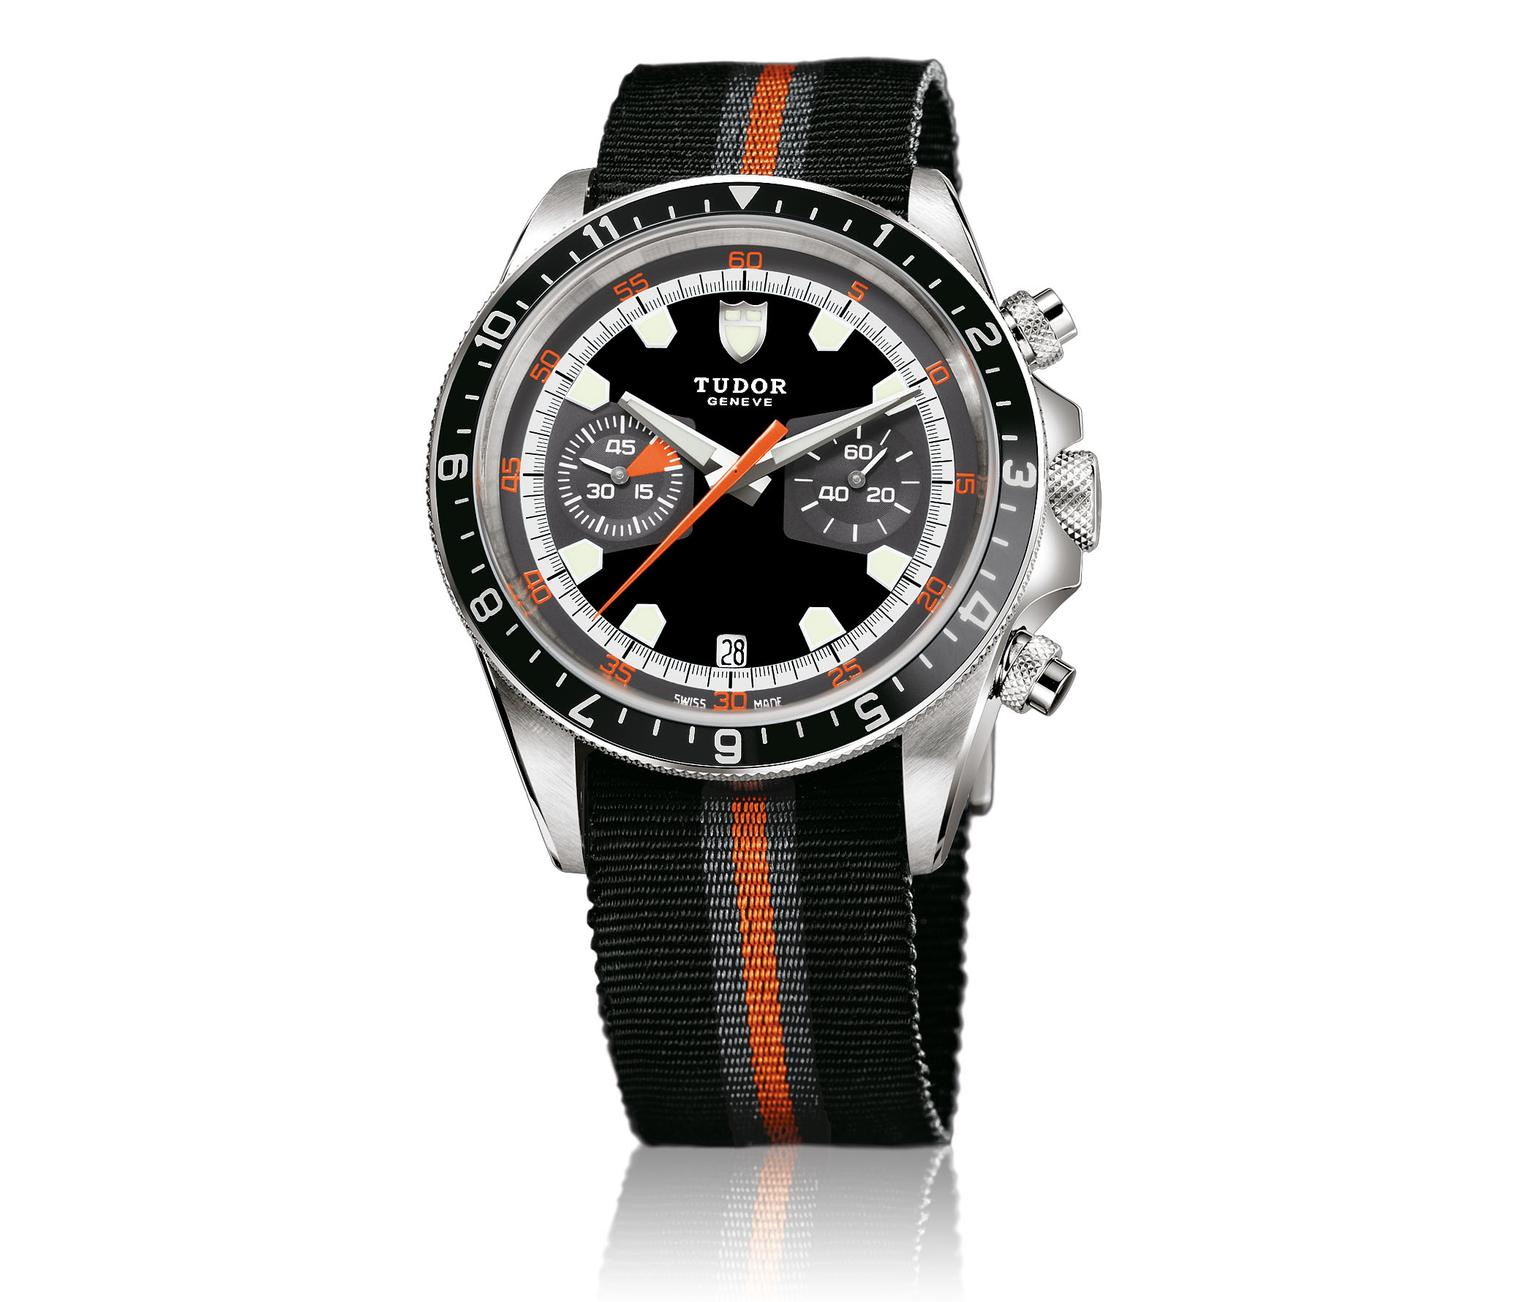 Tudor-Chrono-Watch-Zoom